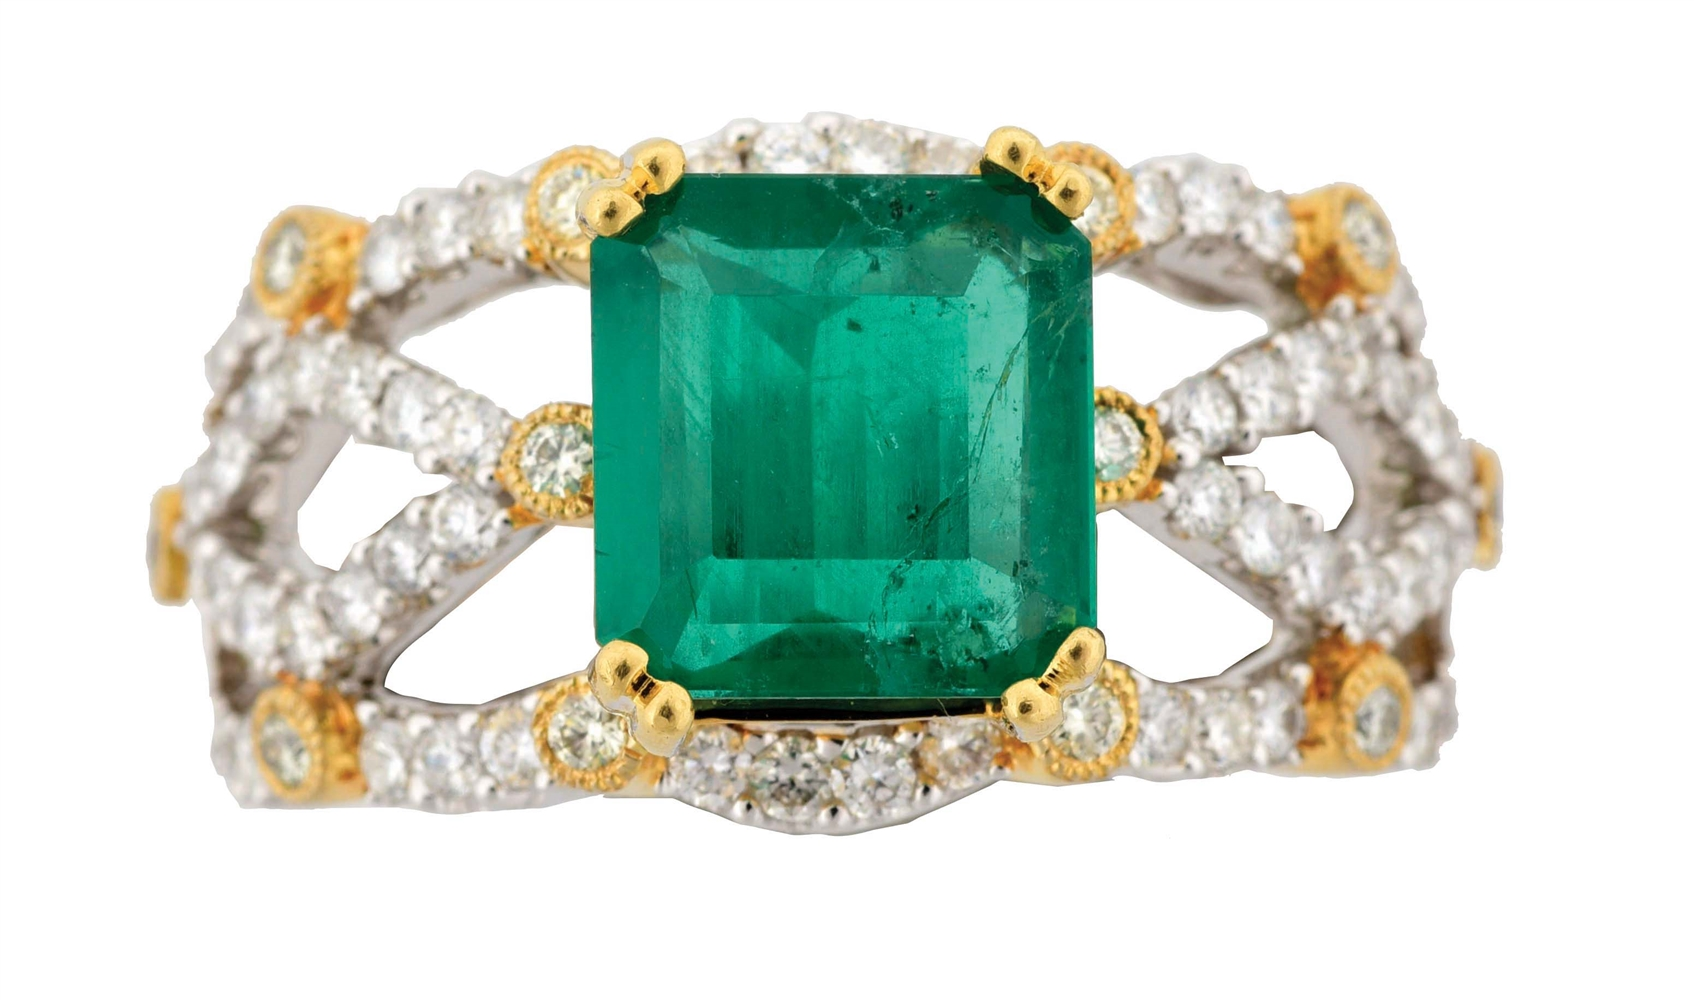 LADYS 18K TWO-TONE GOLD EMERALD AND DIAMOND RING WITH APPRAISAL.